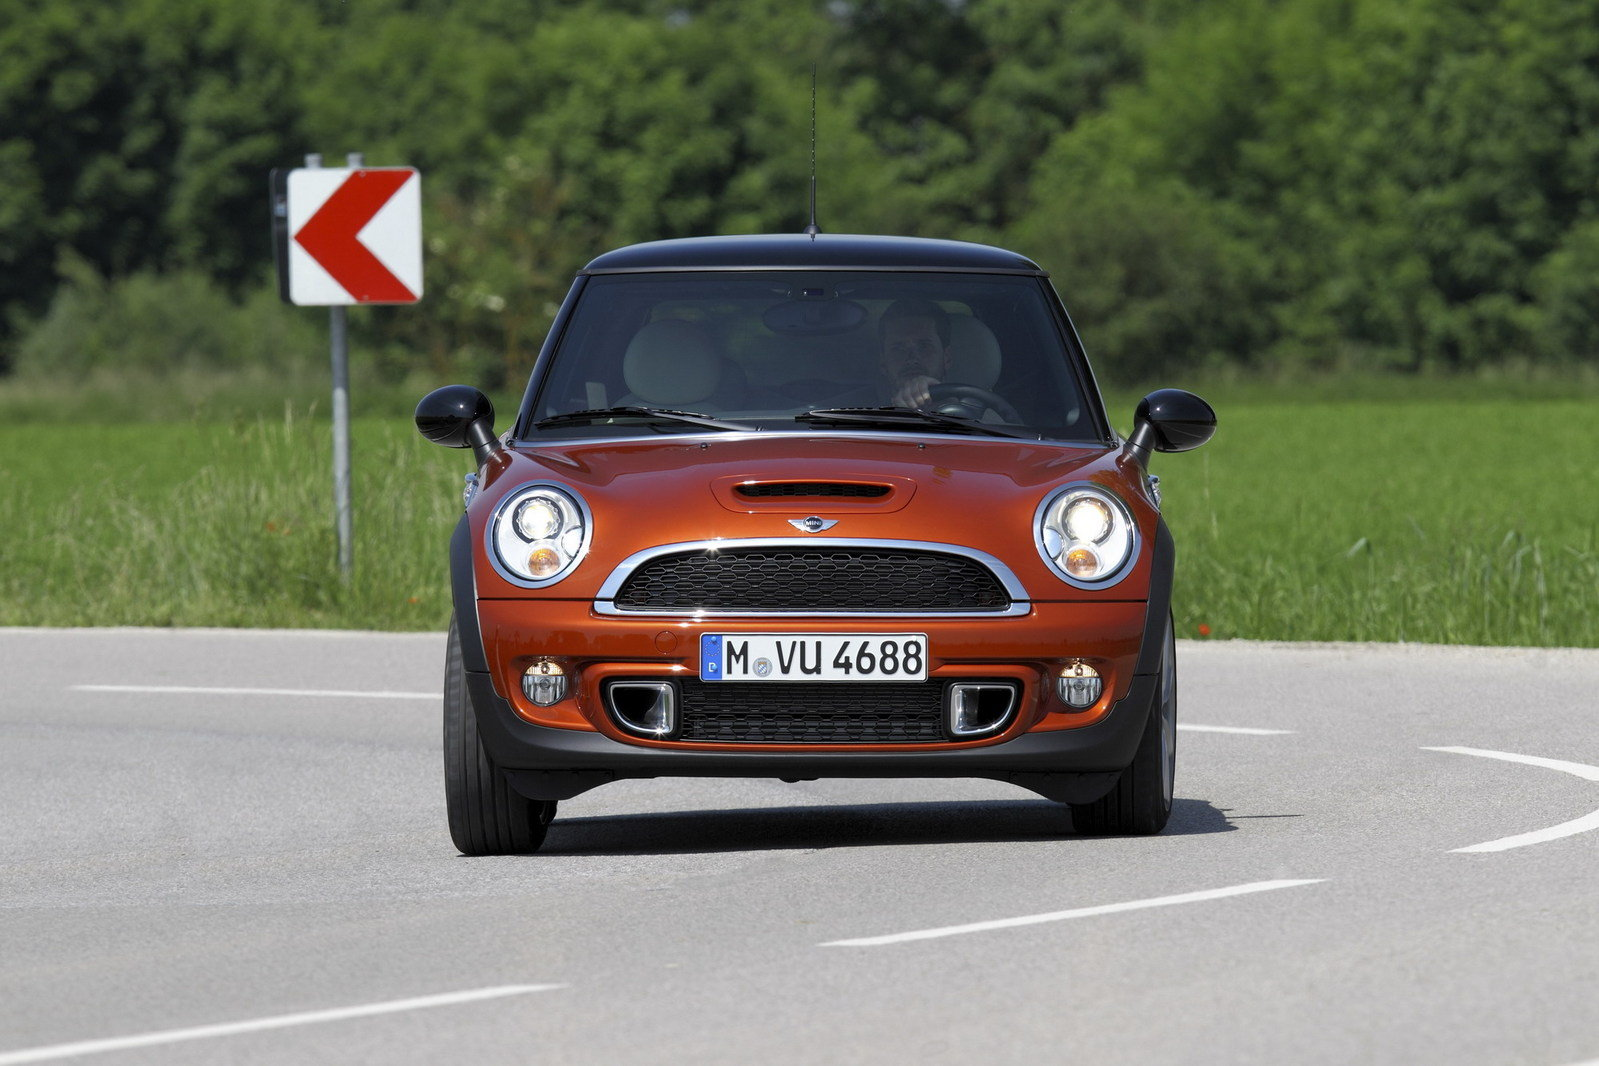 2011 mini cooper s picture 367265 car review top speed. Black Bedroom Furniture Sets. Home Design Ideas